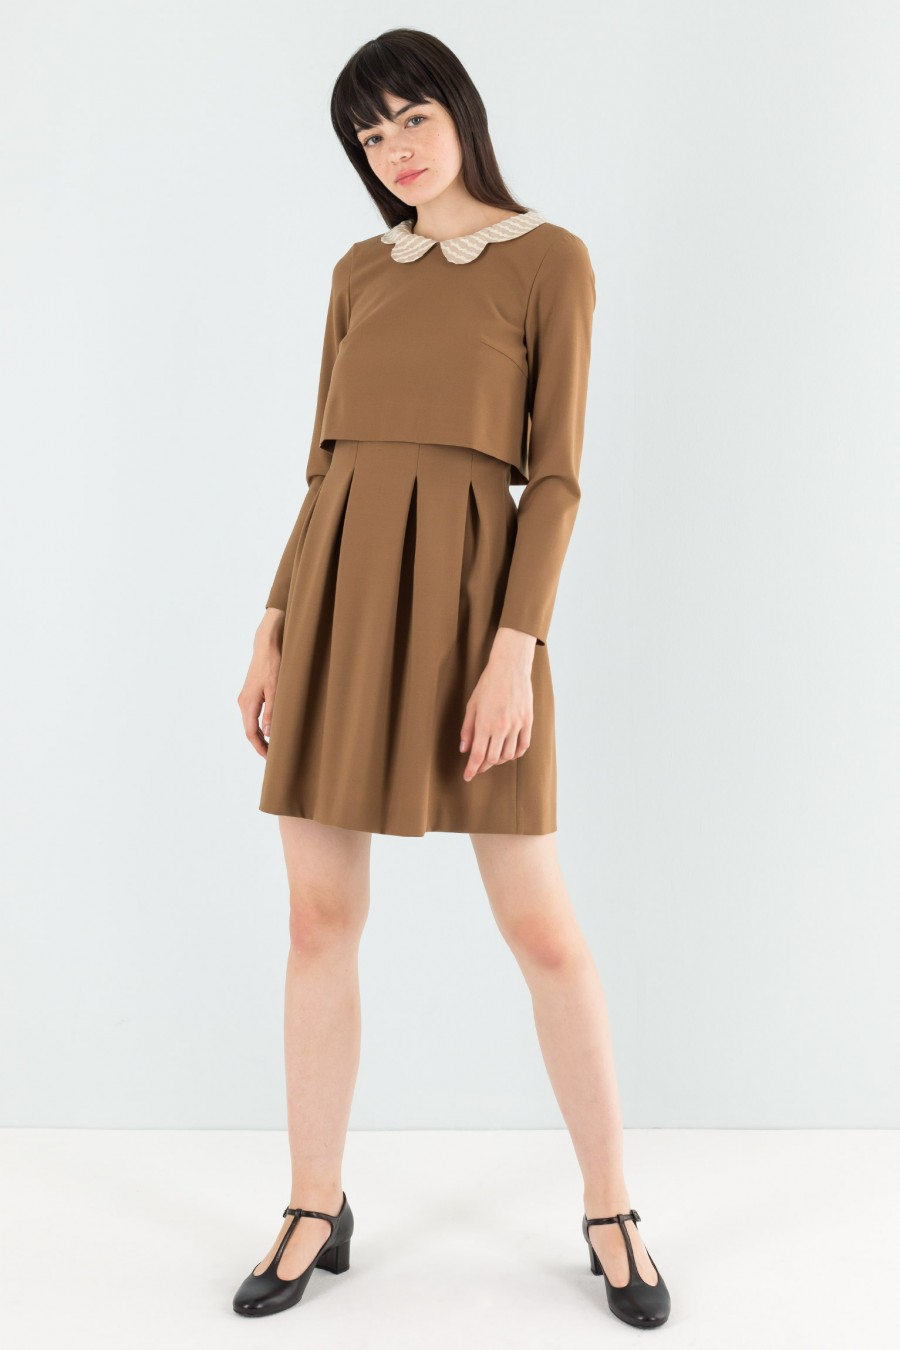 Pleated camel dress